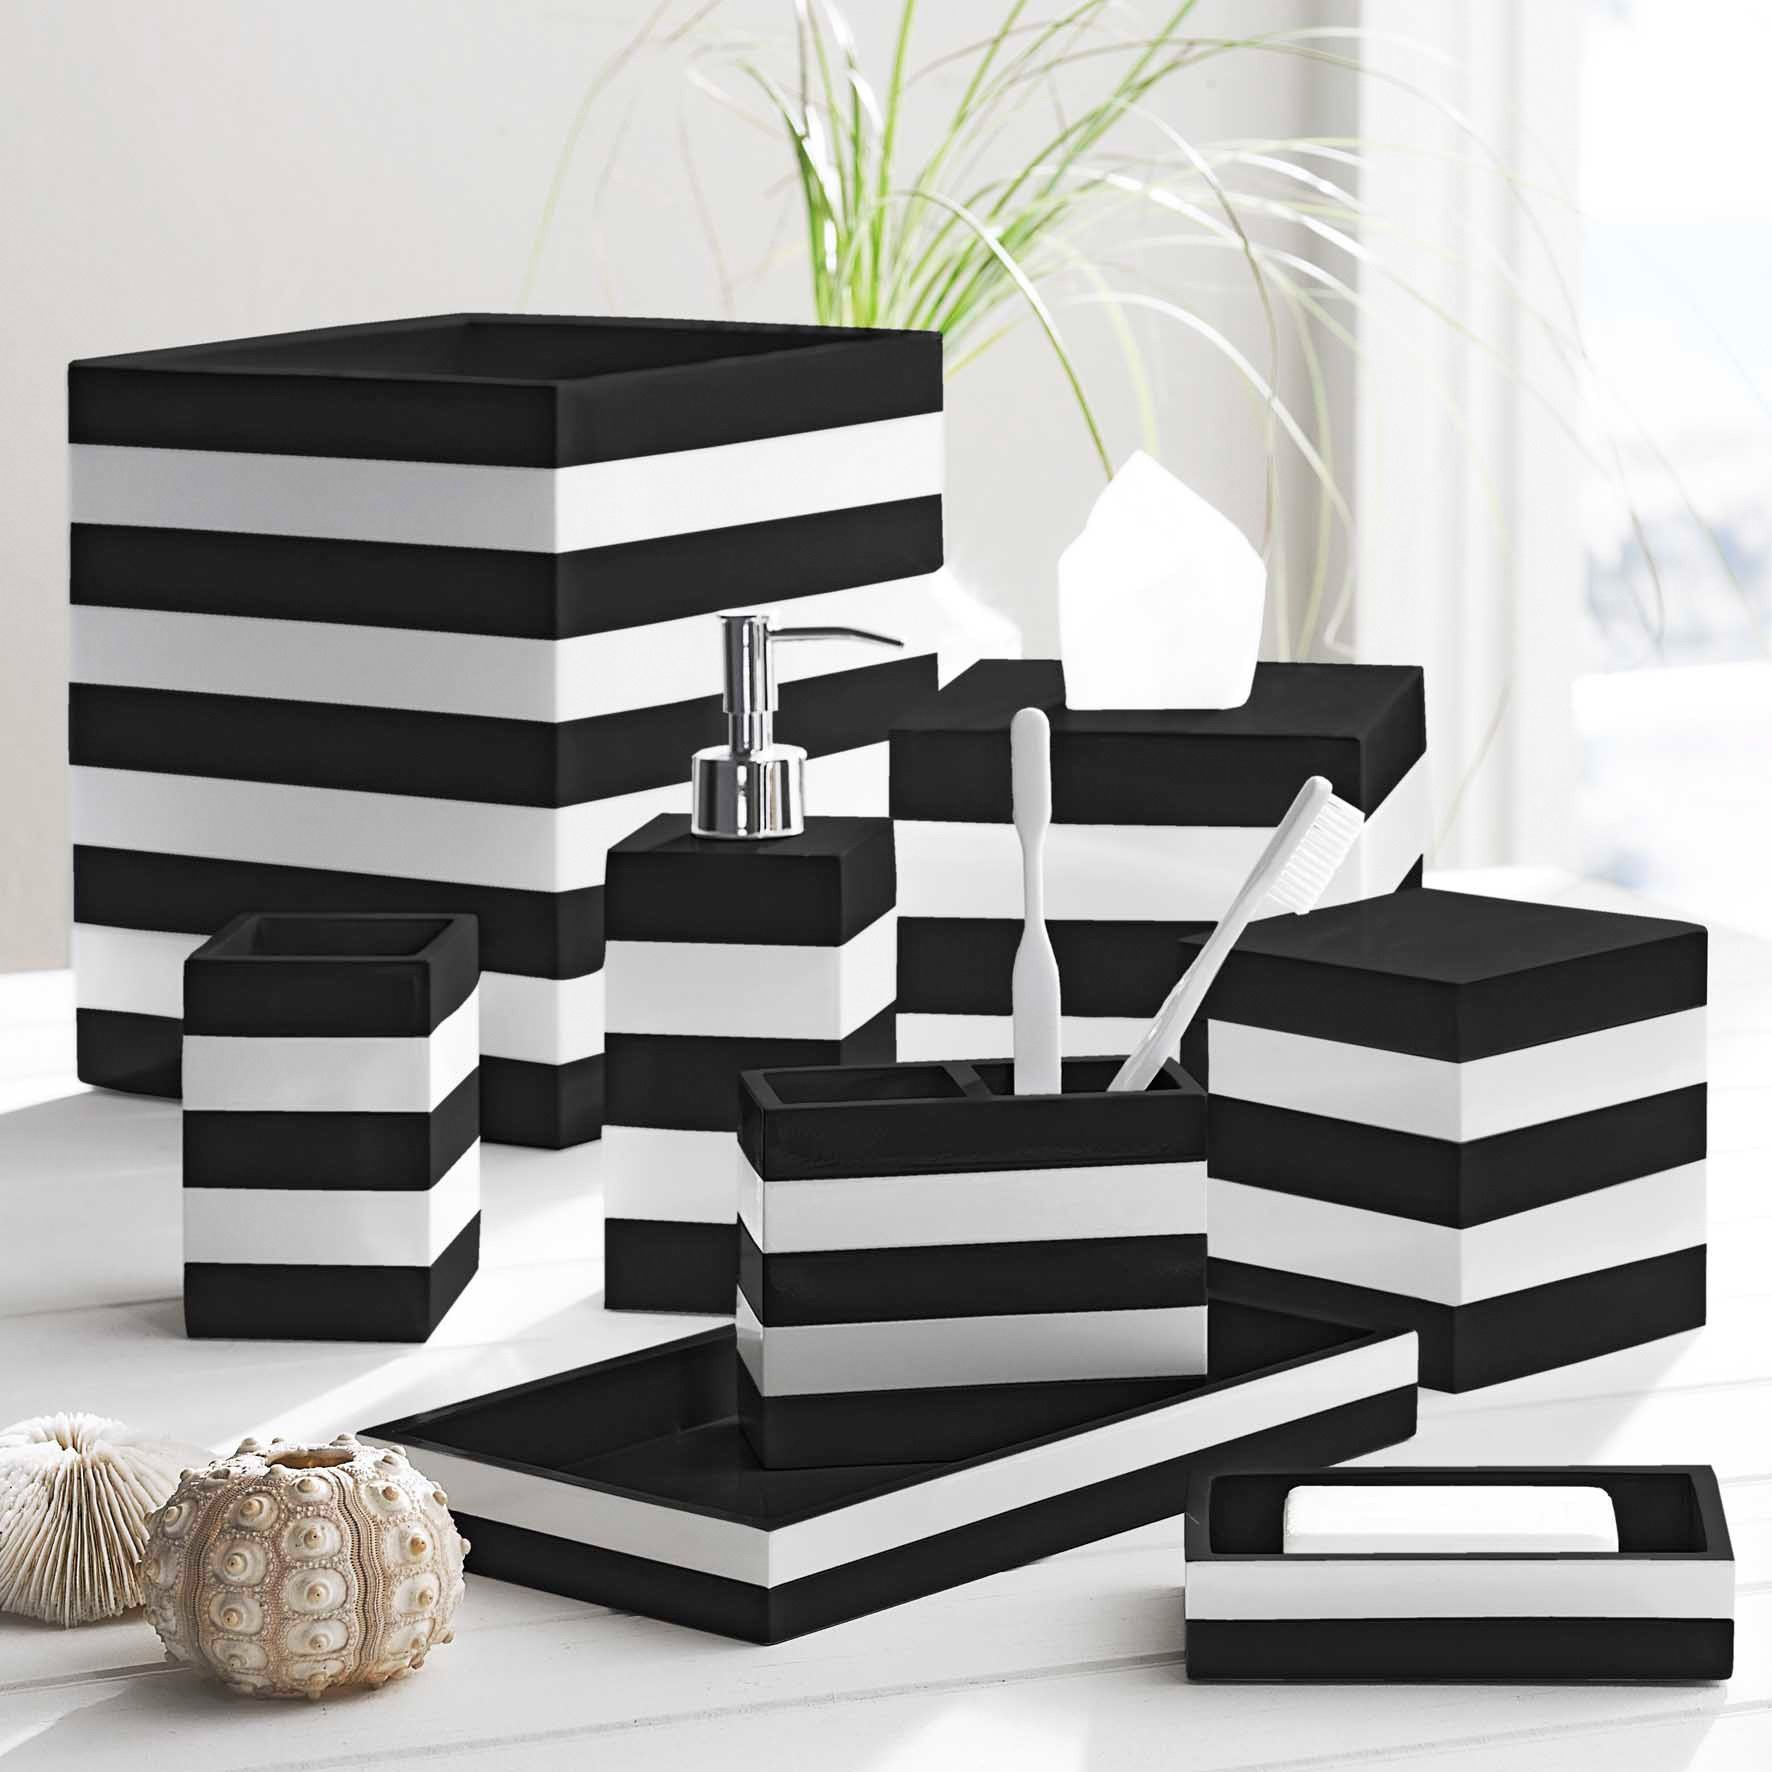 Add A Nautical Charm To Your Bathroom With This Set Of Coastal Themed  Accessories. Crafted From Resin With A Lacquer Finish For Durability, The  Setu0027s Black ...